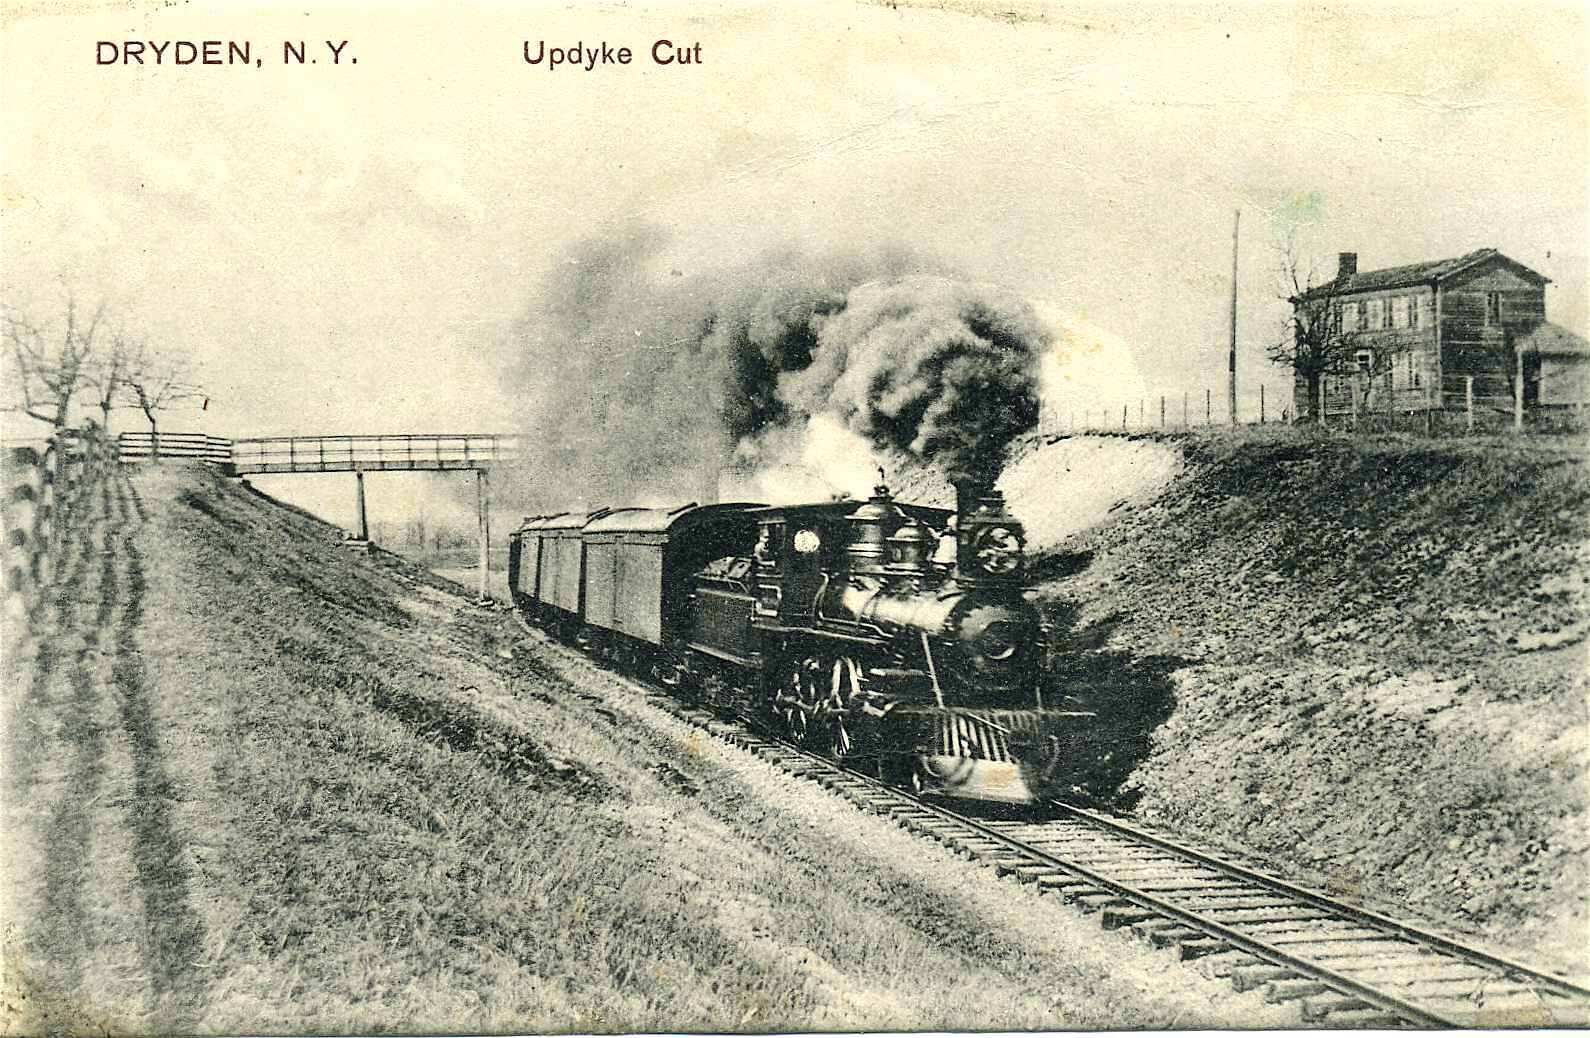 A unknown LV Locomotive